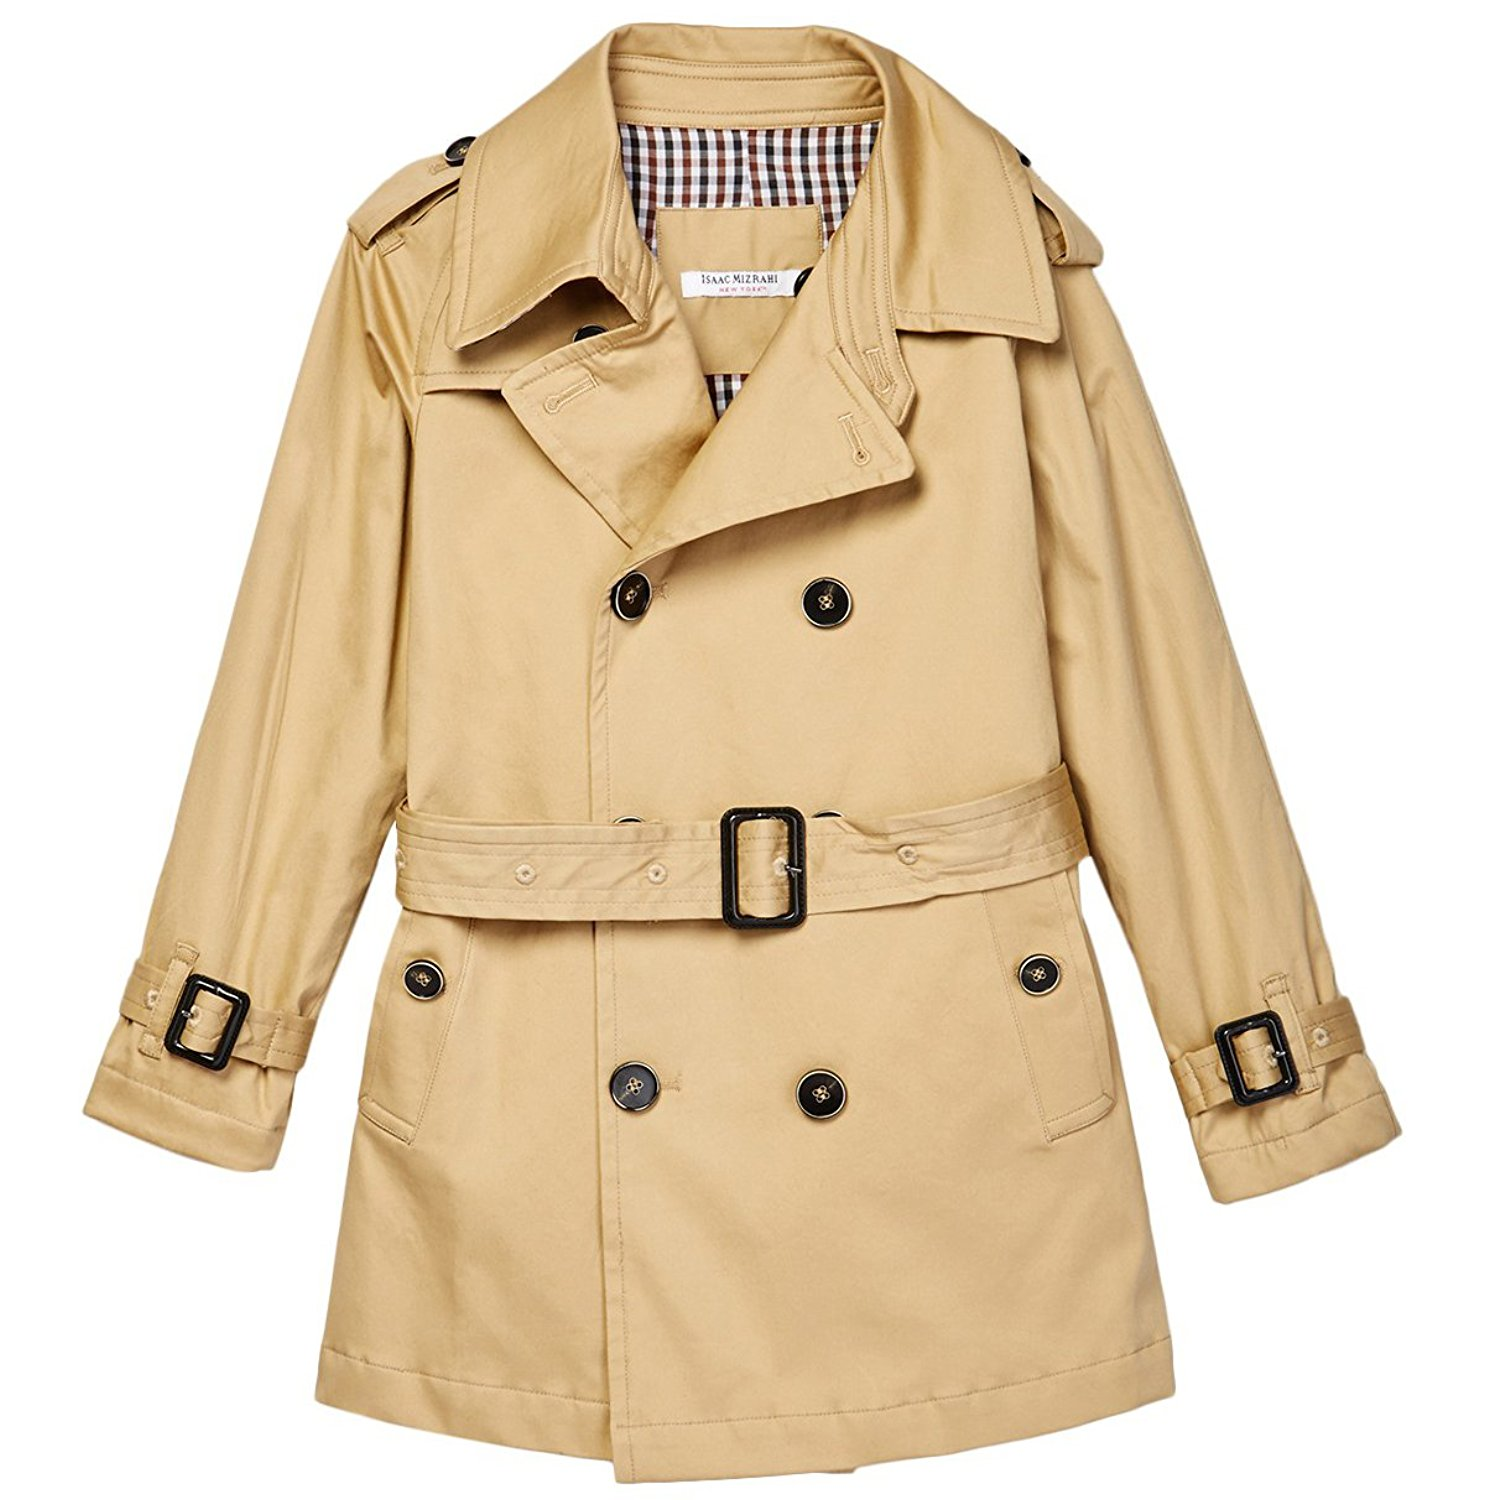 Isaac Mizrahi Boy's Double Breasted Belted Trench Coat-Ra...